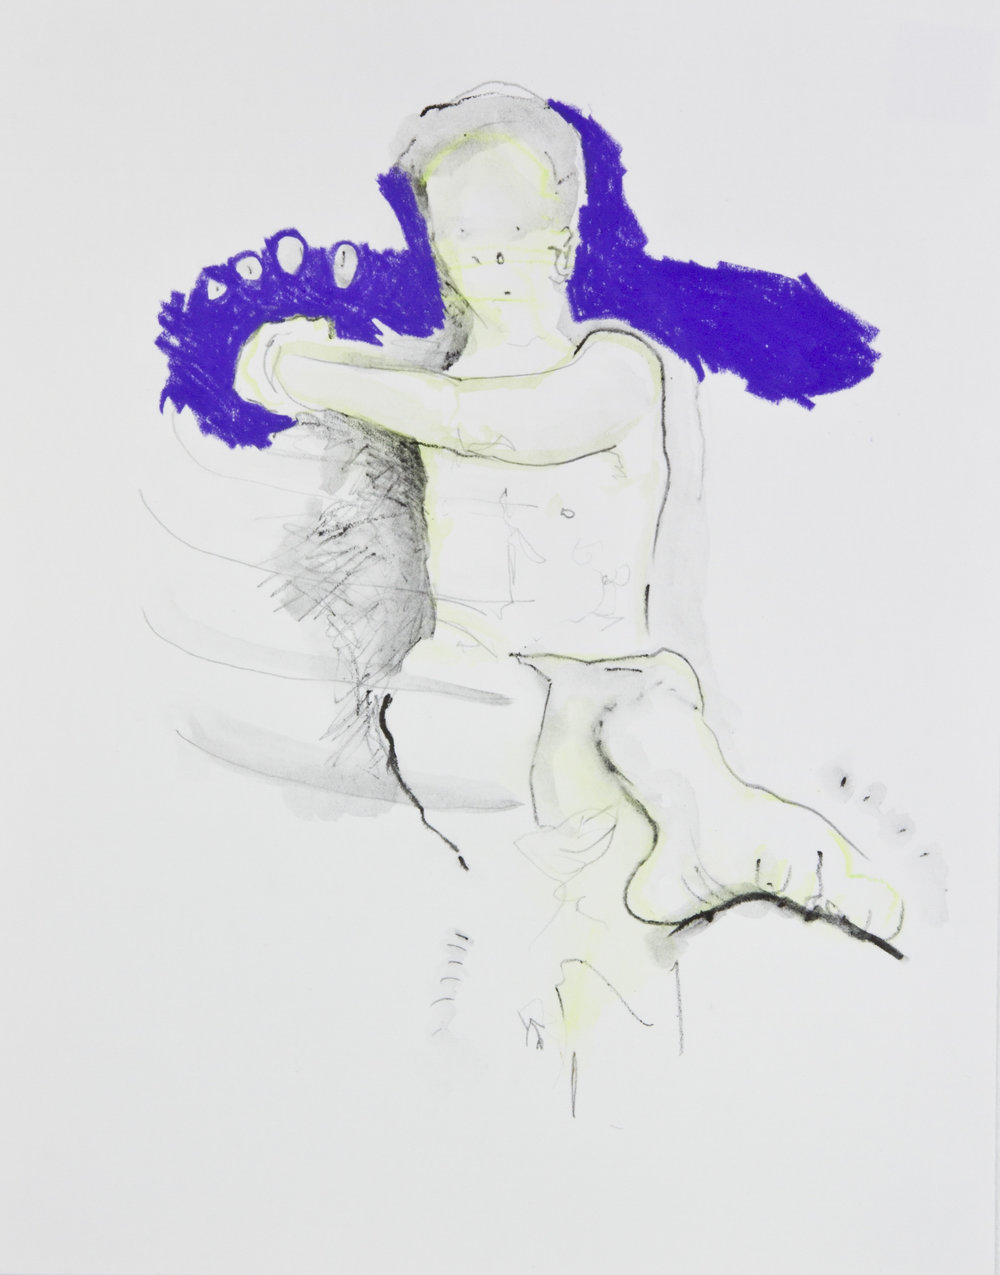 Purple Can Can, 2013, graphite, crayon and watercolor pencil on paper, 11x14 inches